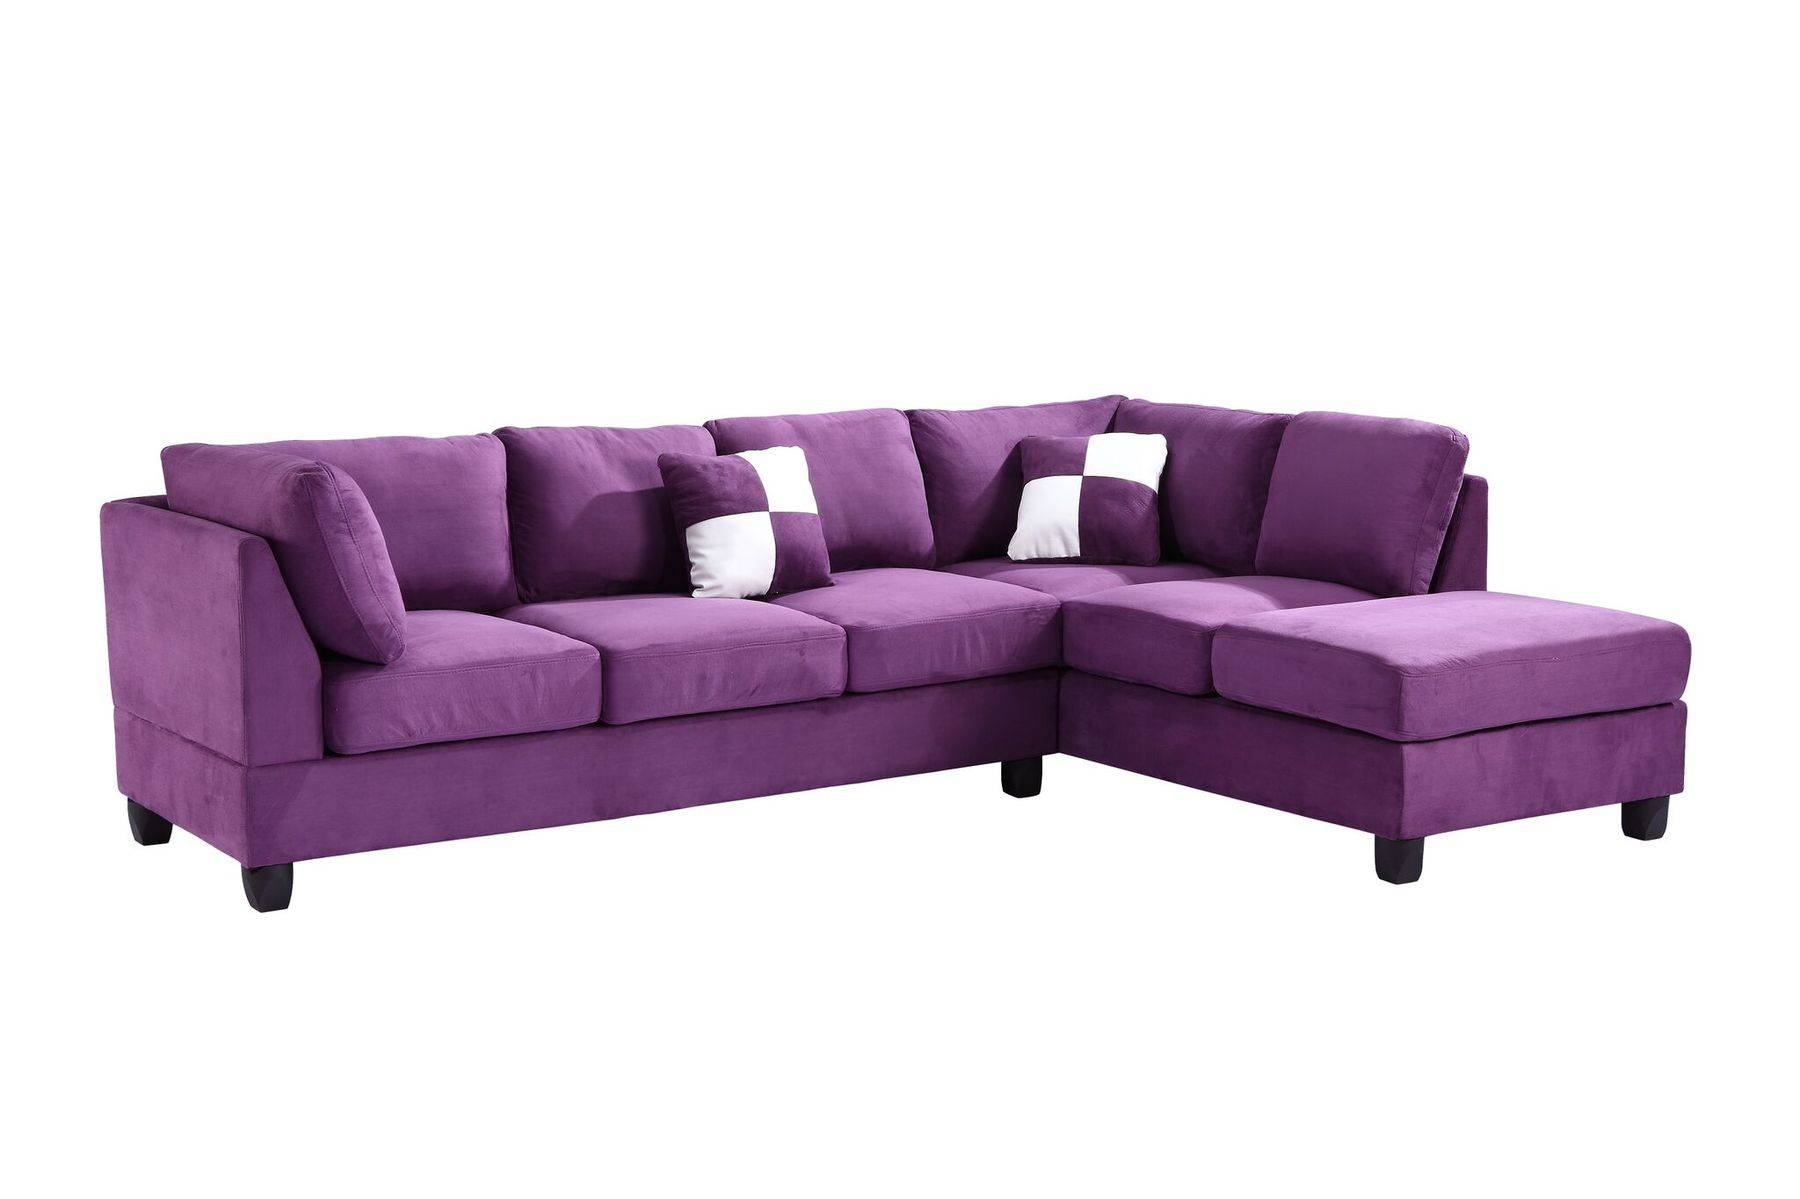 30 Inspirations of Eggplant Sectional Sofa